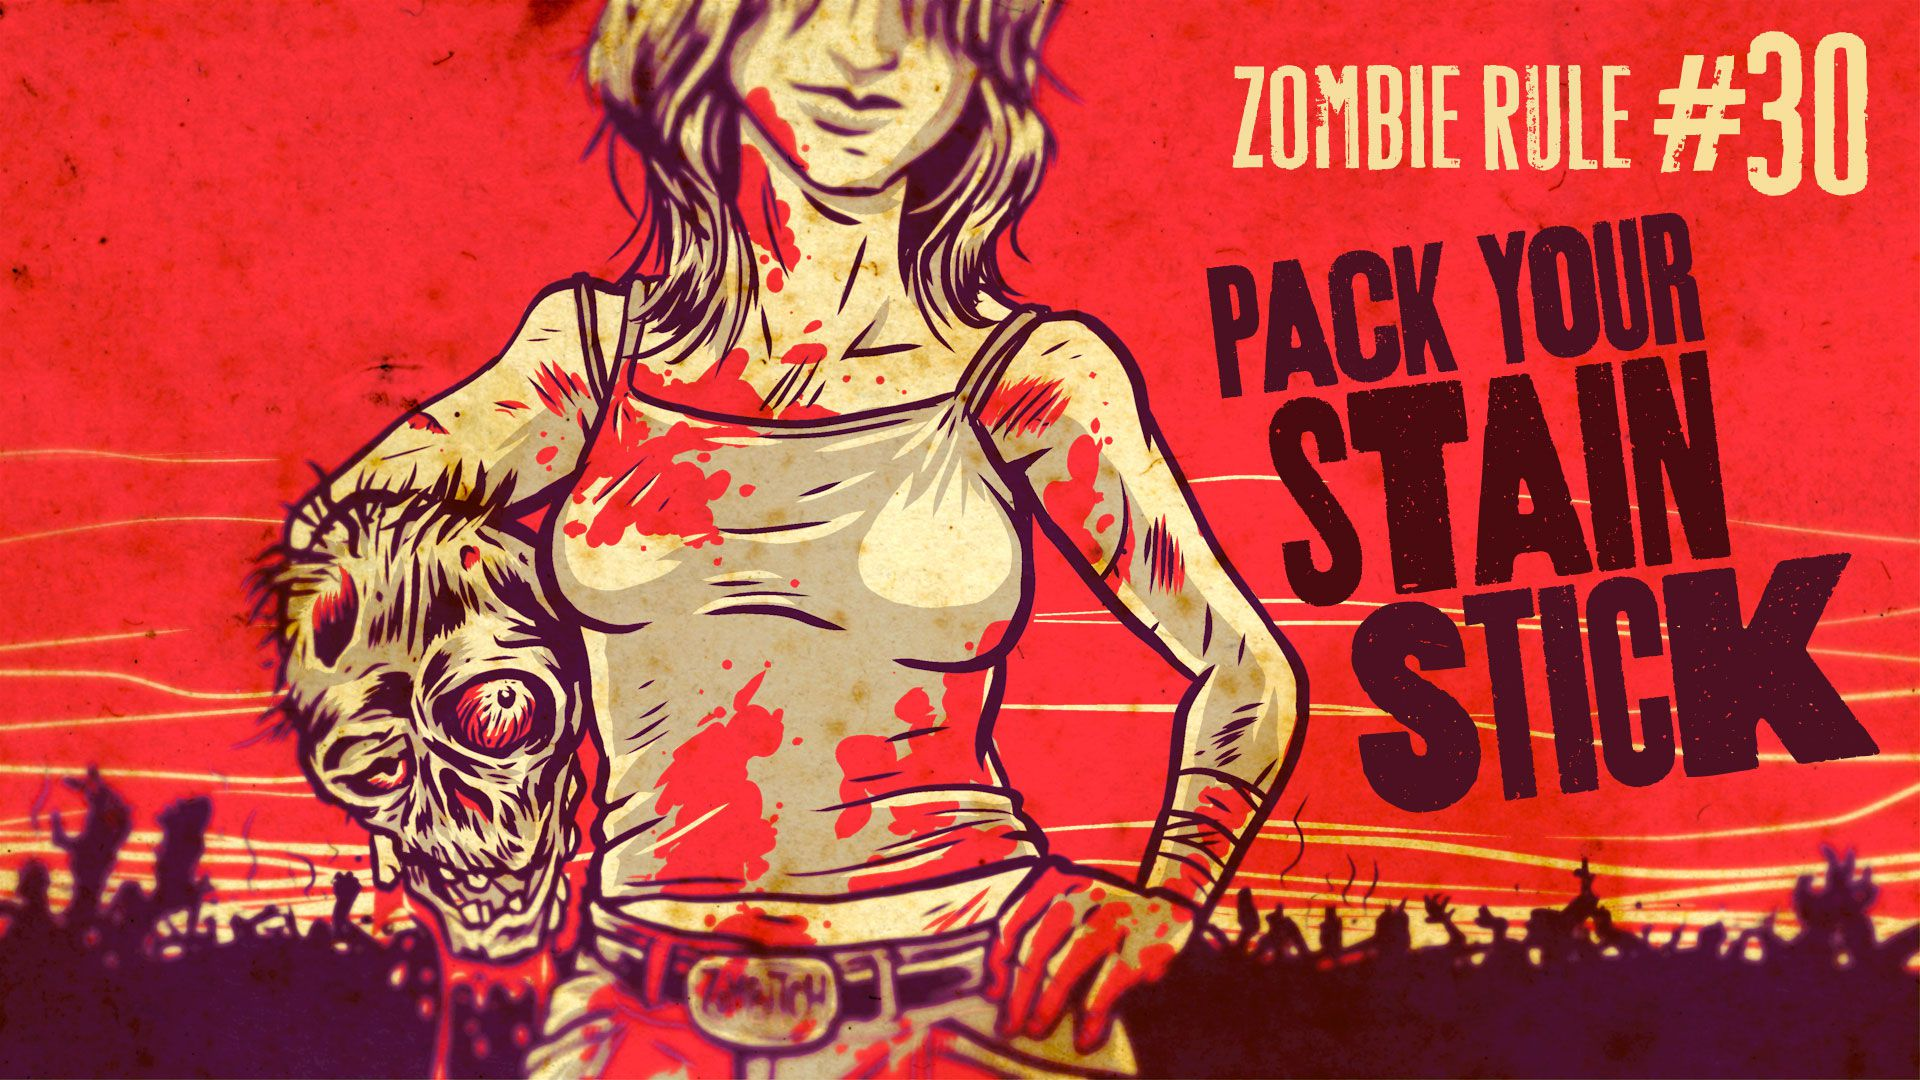 Zombie Rule 30: Pack Your Stain Stick